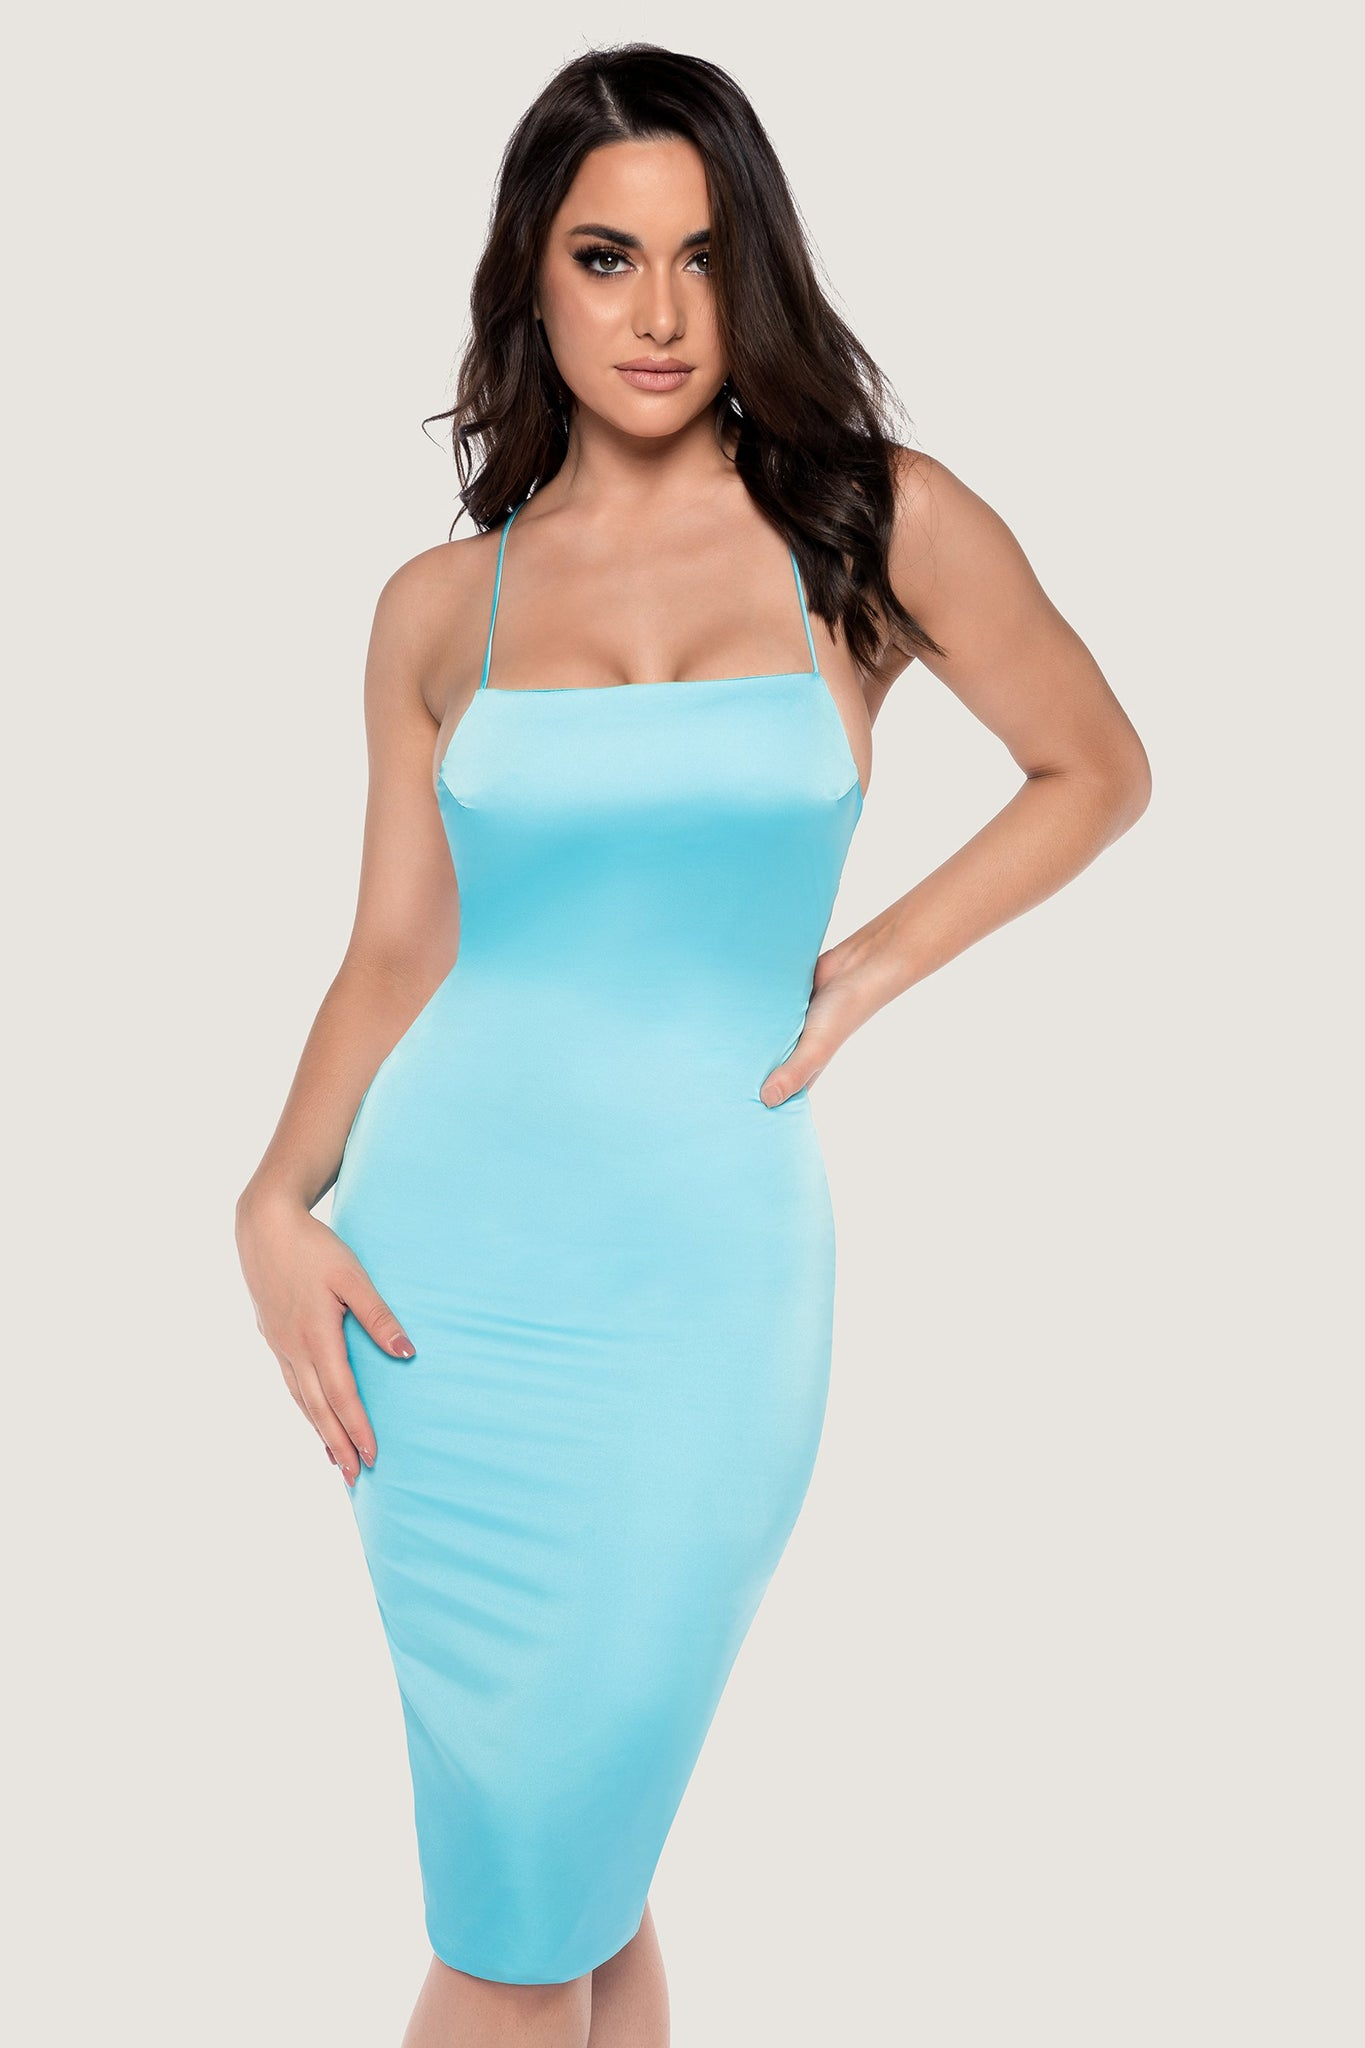 Bebe Thin Strap Lace Up Midi Dress - Baby Blue - MESHKI